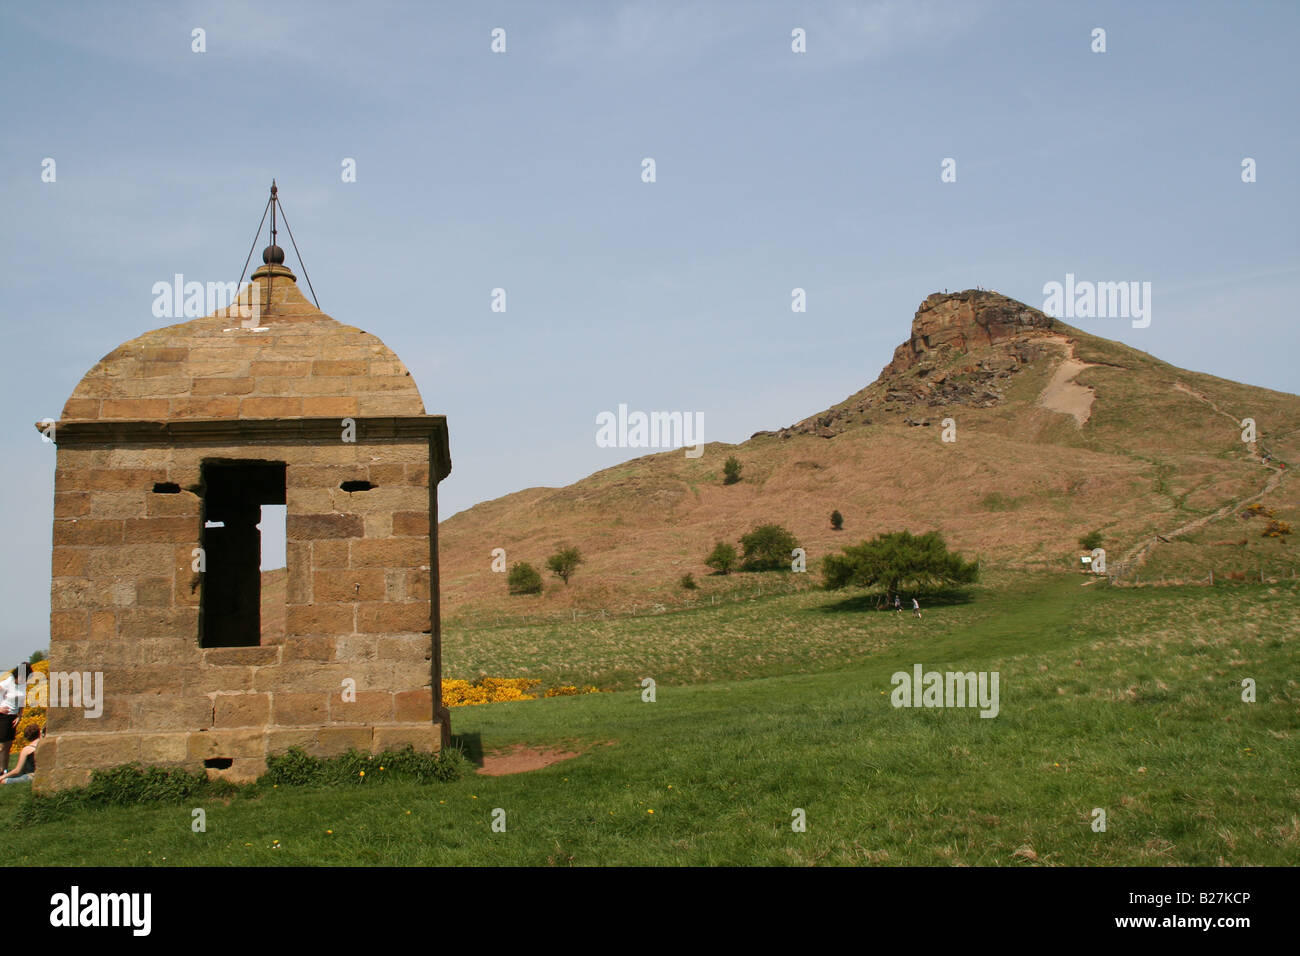 Folly or summerhouse, Roseberry Topping, North Yorkshire - Stock Image